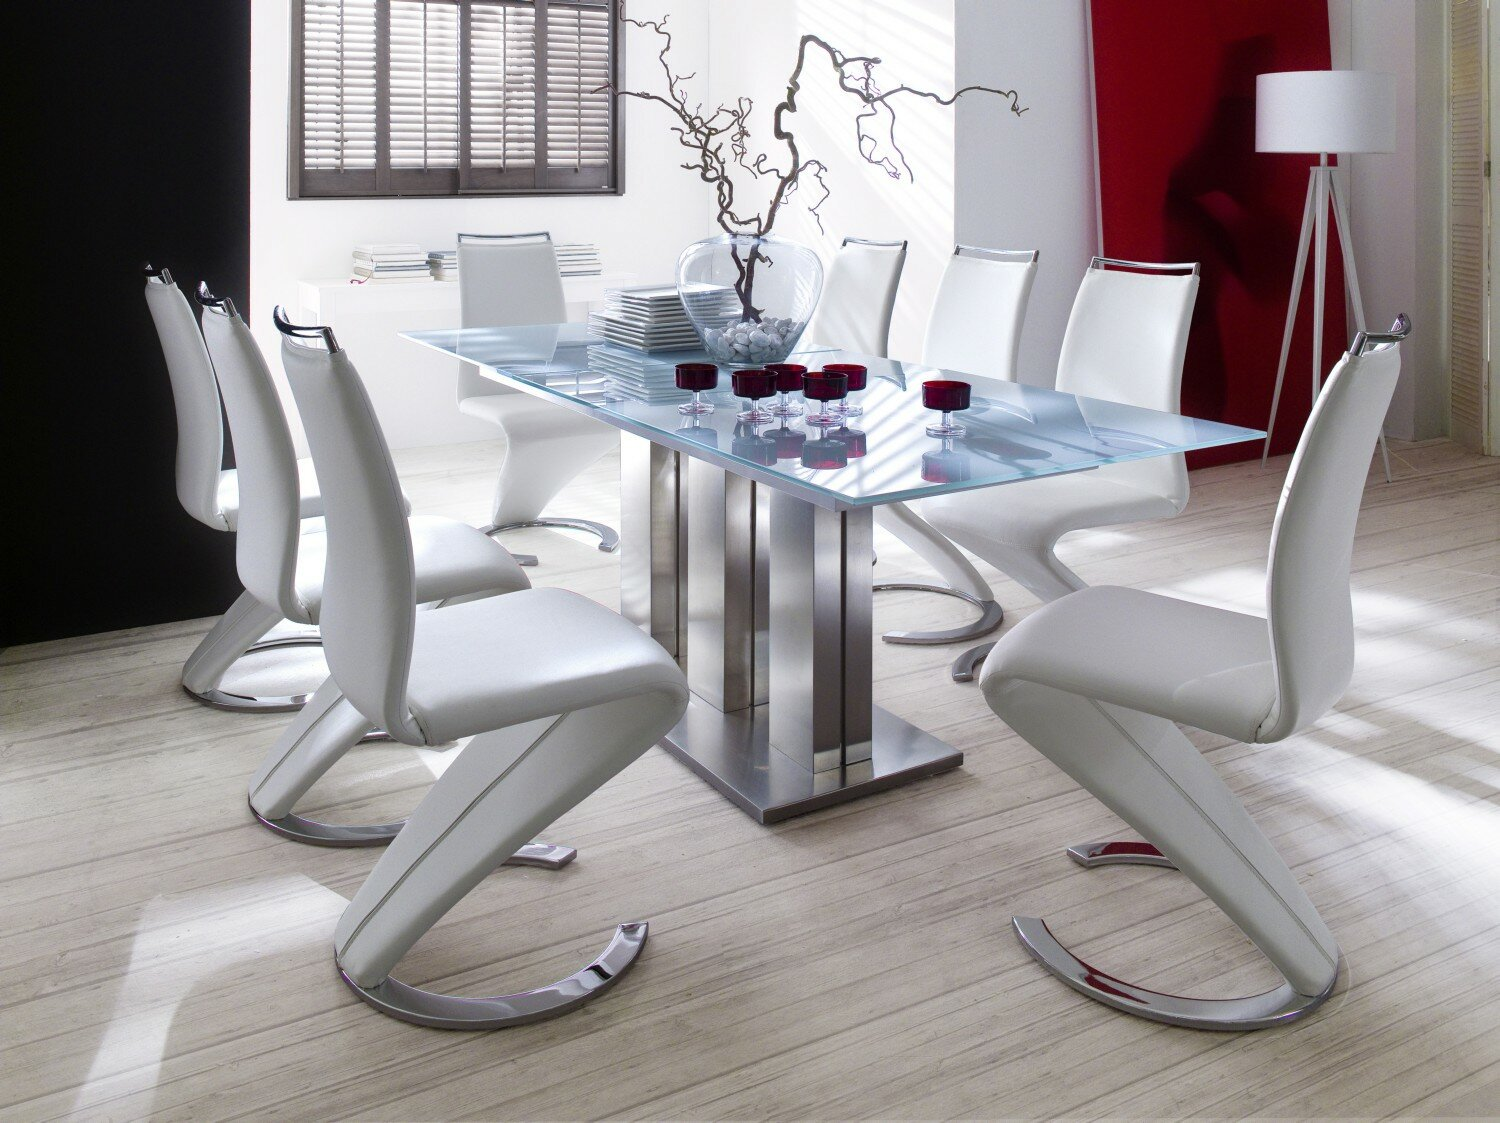 23 Modern Dining Room Examples With Photos MostBeautifulThings